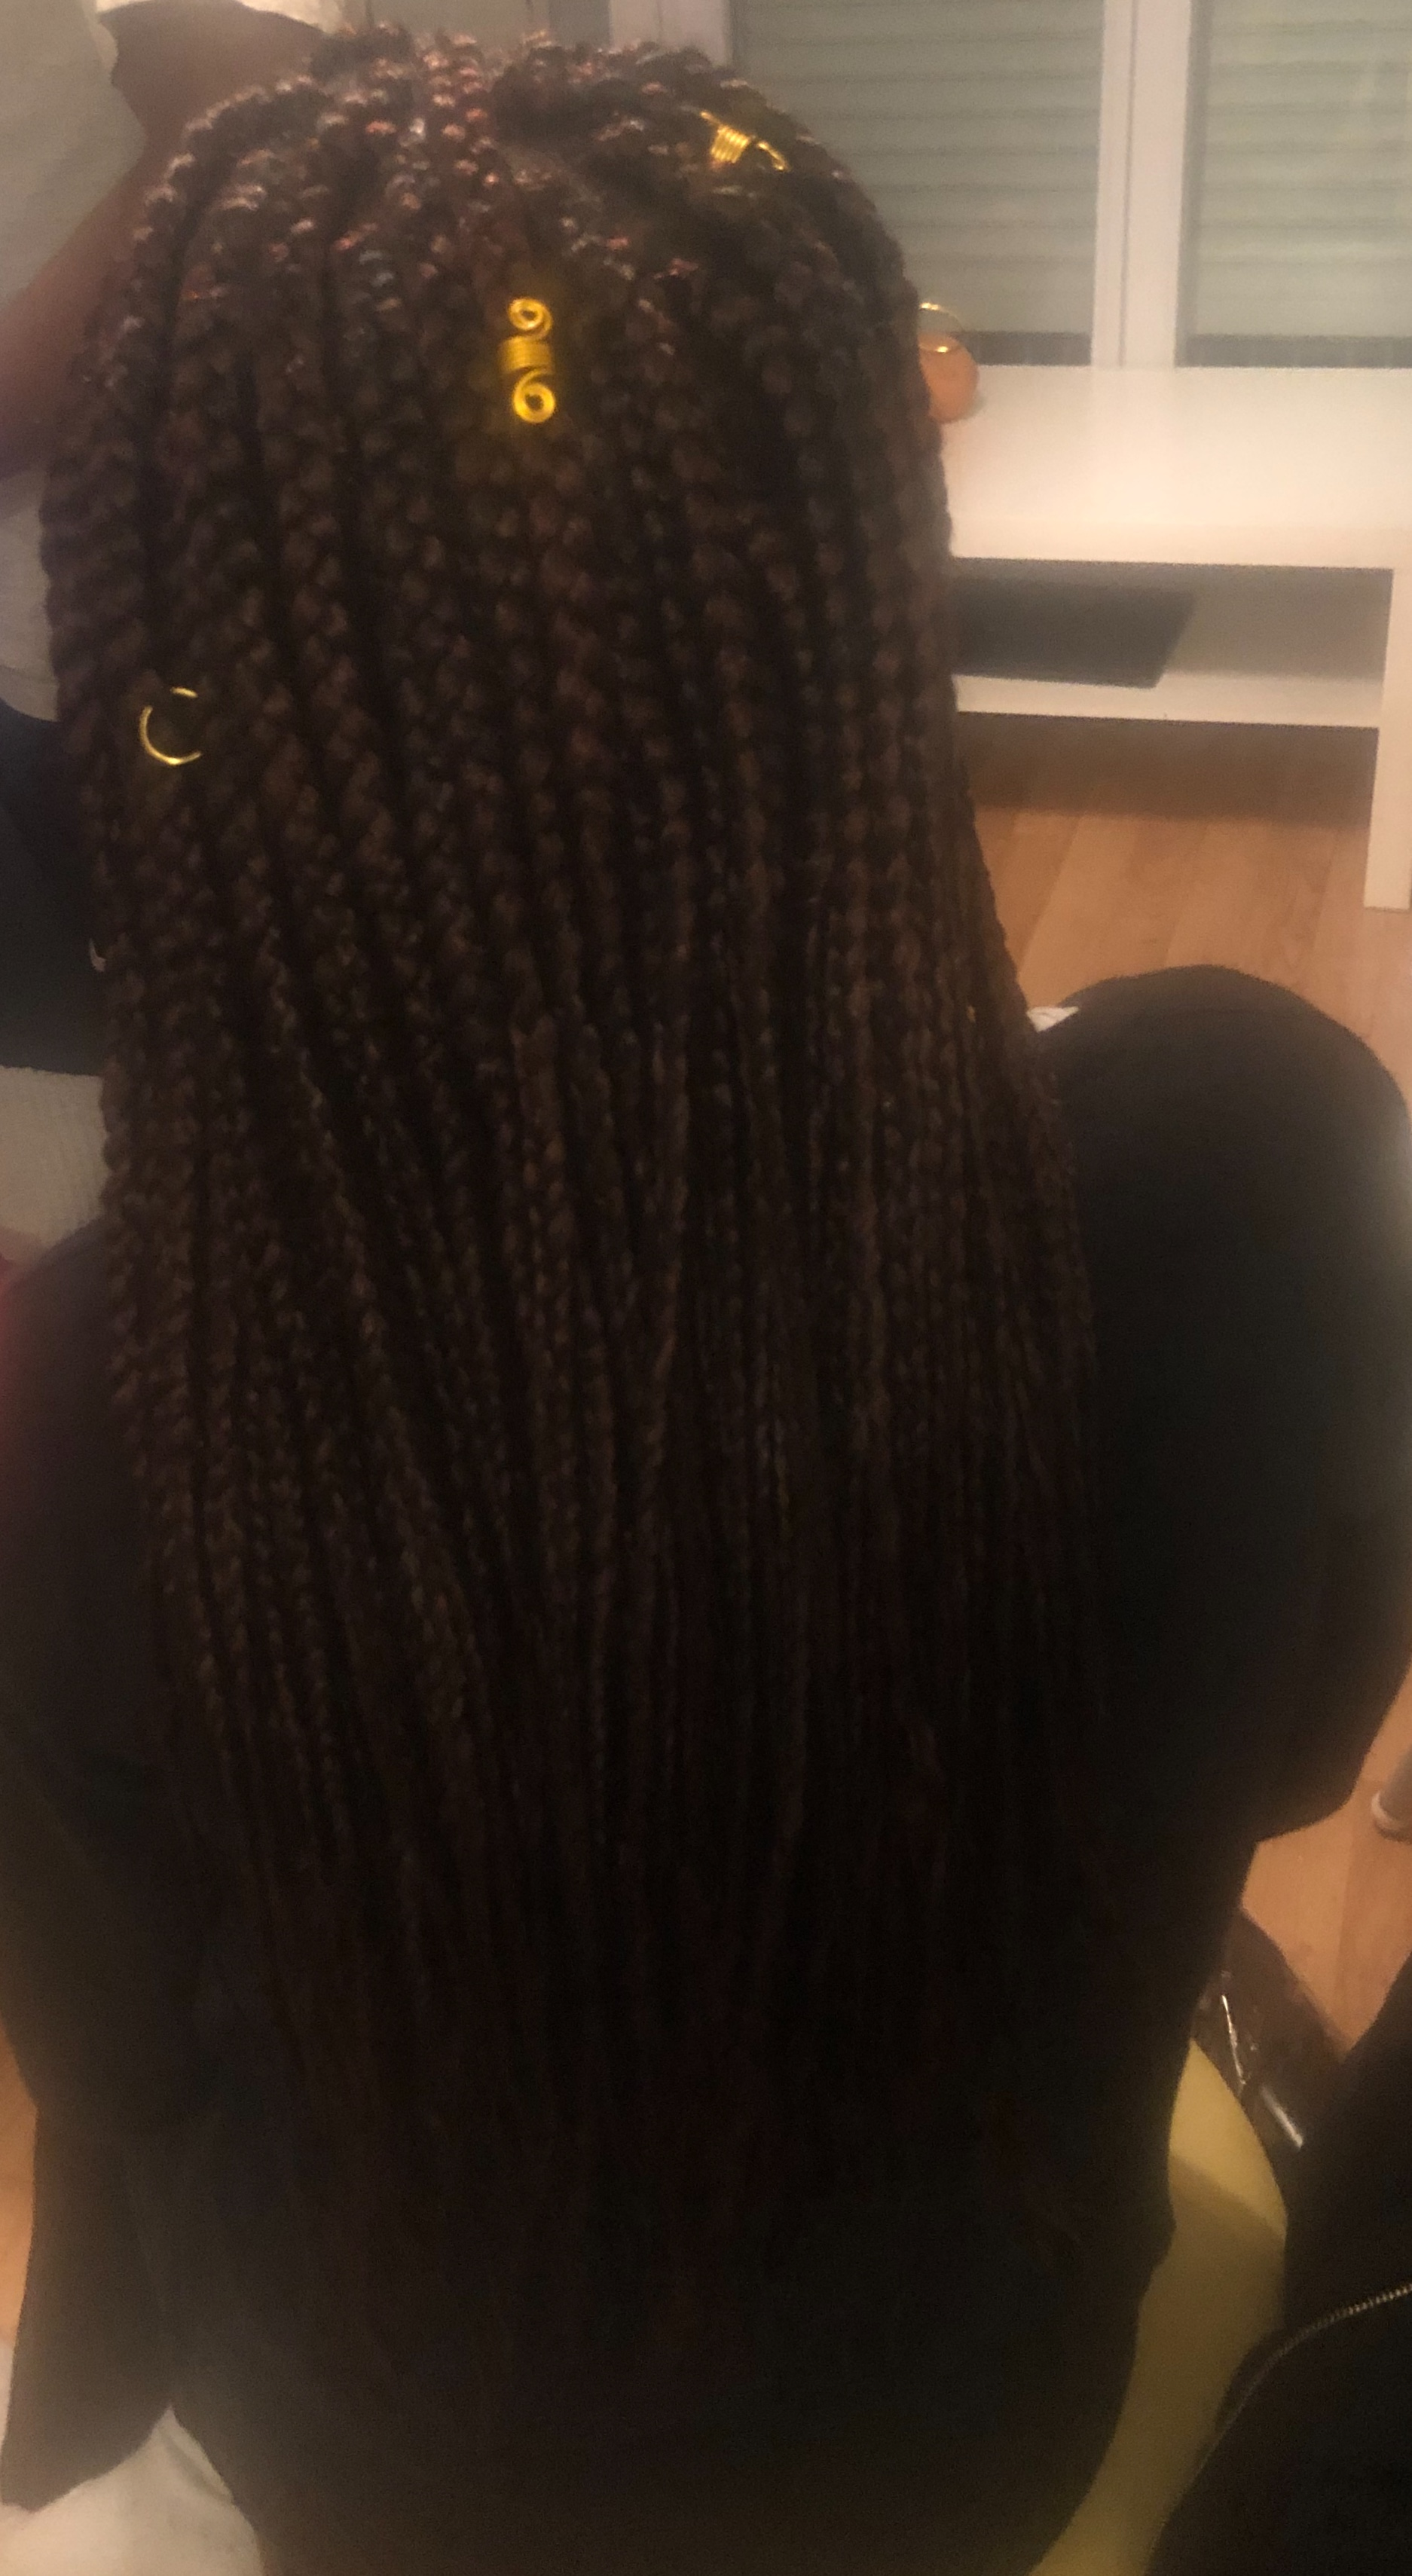 salon de coiffure afro tresse tresses box braids crochet braids vanilles tissages paris 75 77 78 91 92 93 94 95 RULVUXZH